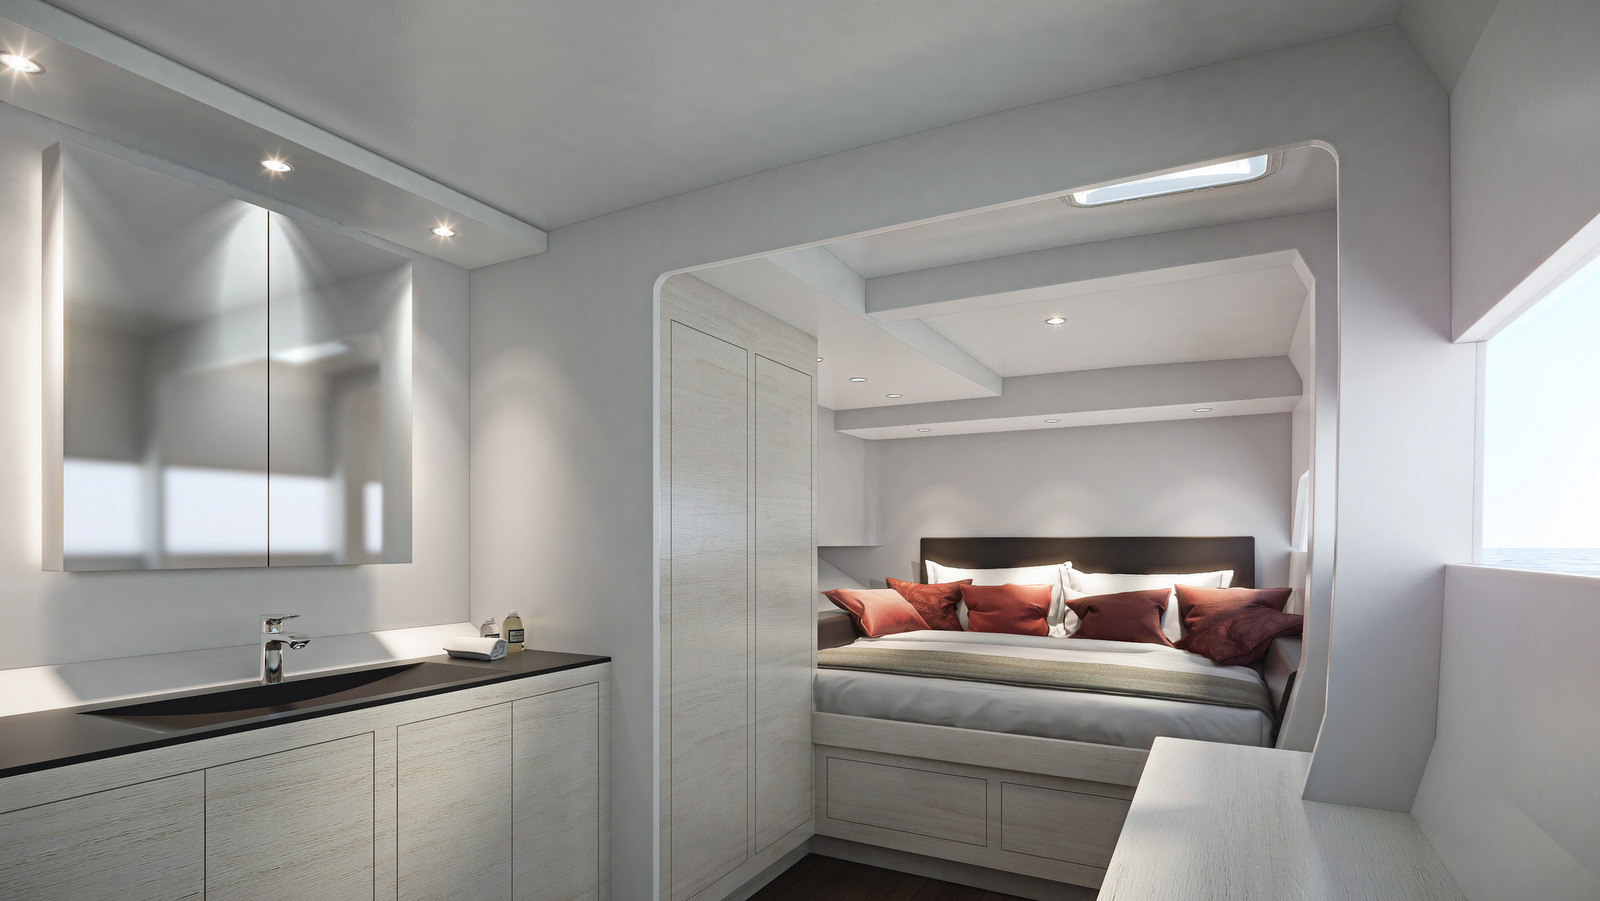 one-of-the-cabins-of-the-open-ocean-82hpc-sailing-yacht